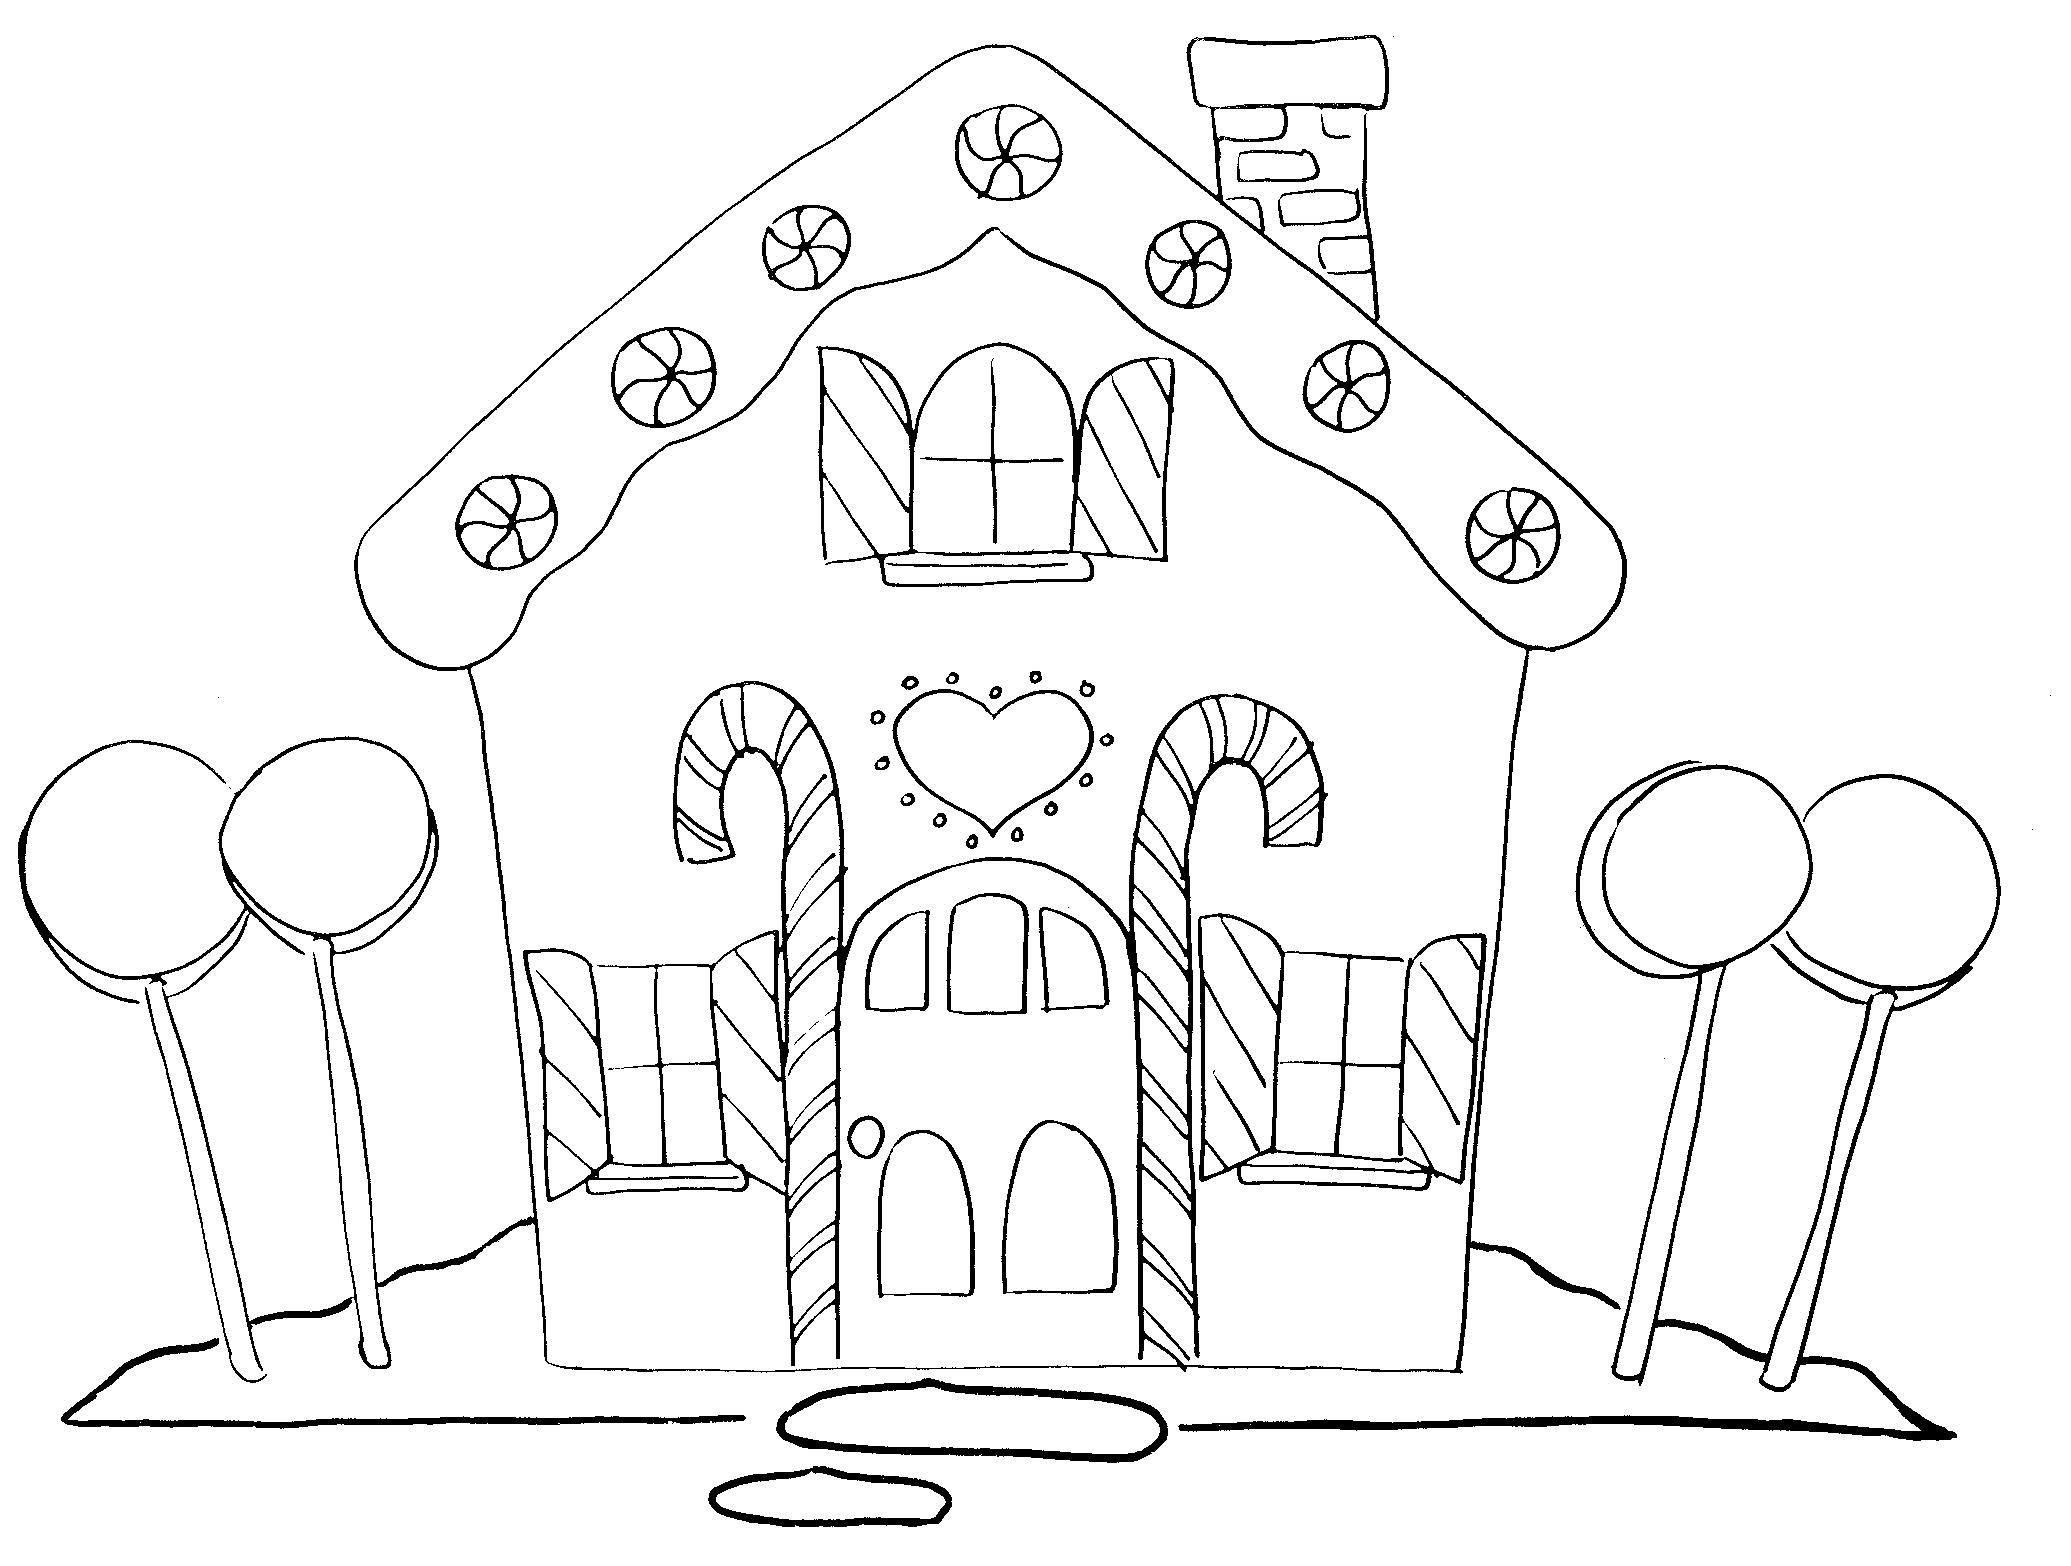 gingerbread house color page gingerbread house coloring pages to download and print for house gingerbread page color